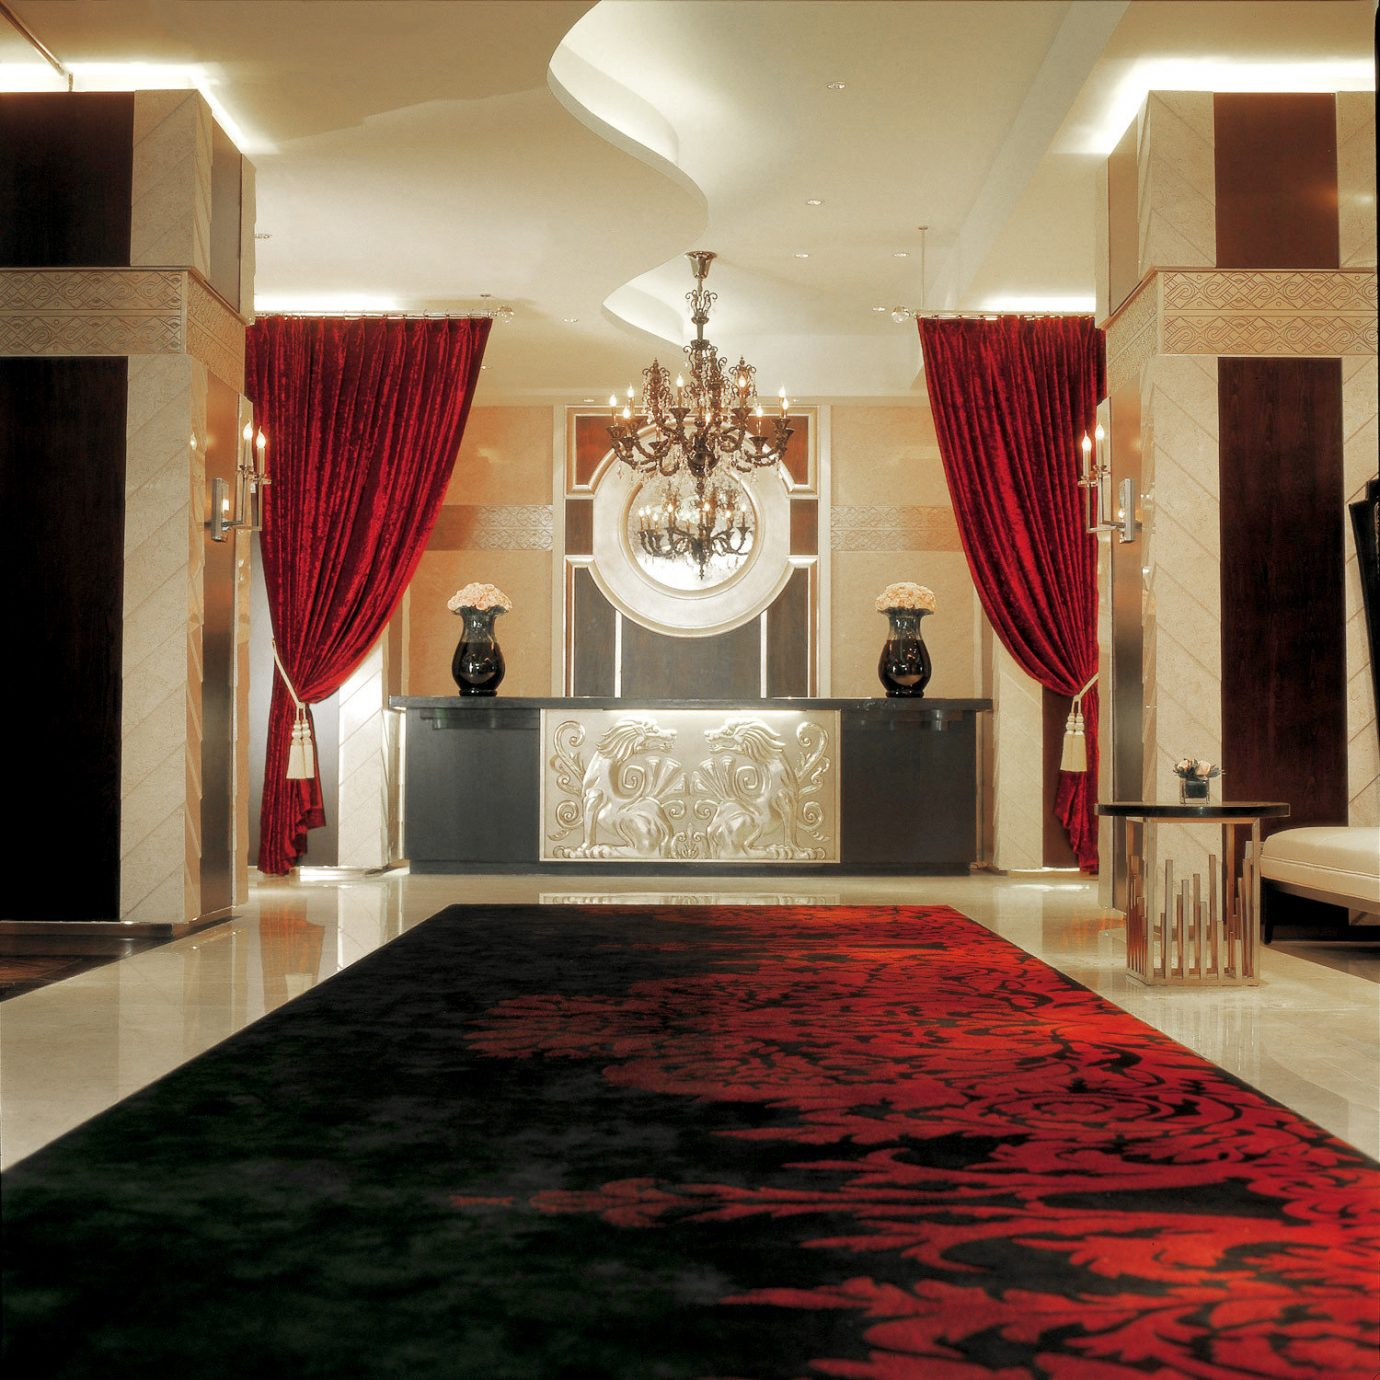 Elegant Lobby Luxury red flooring living room home wood flooring hall carpet rug